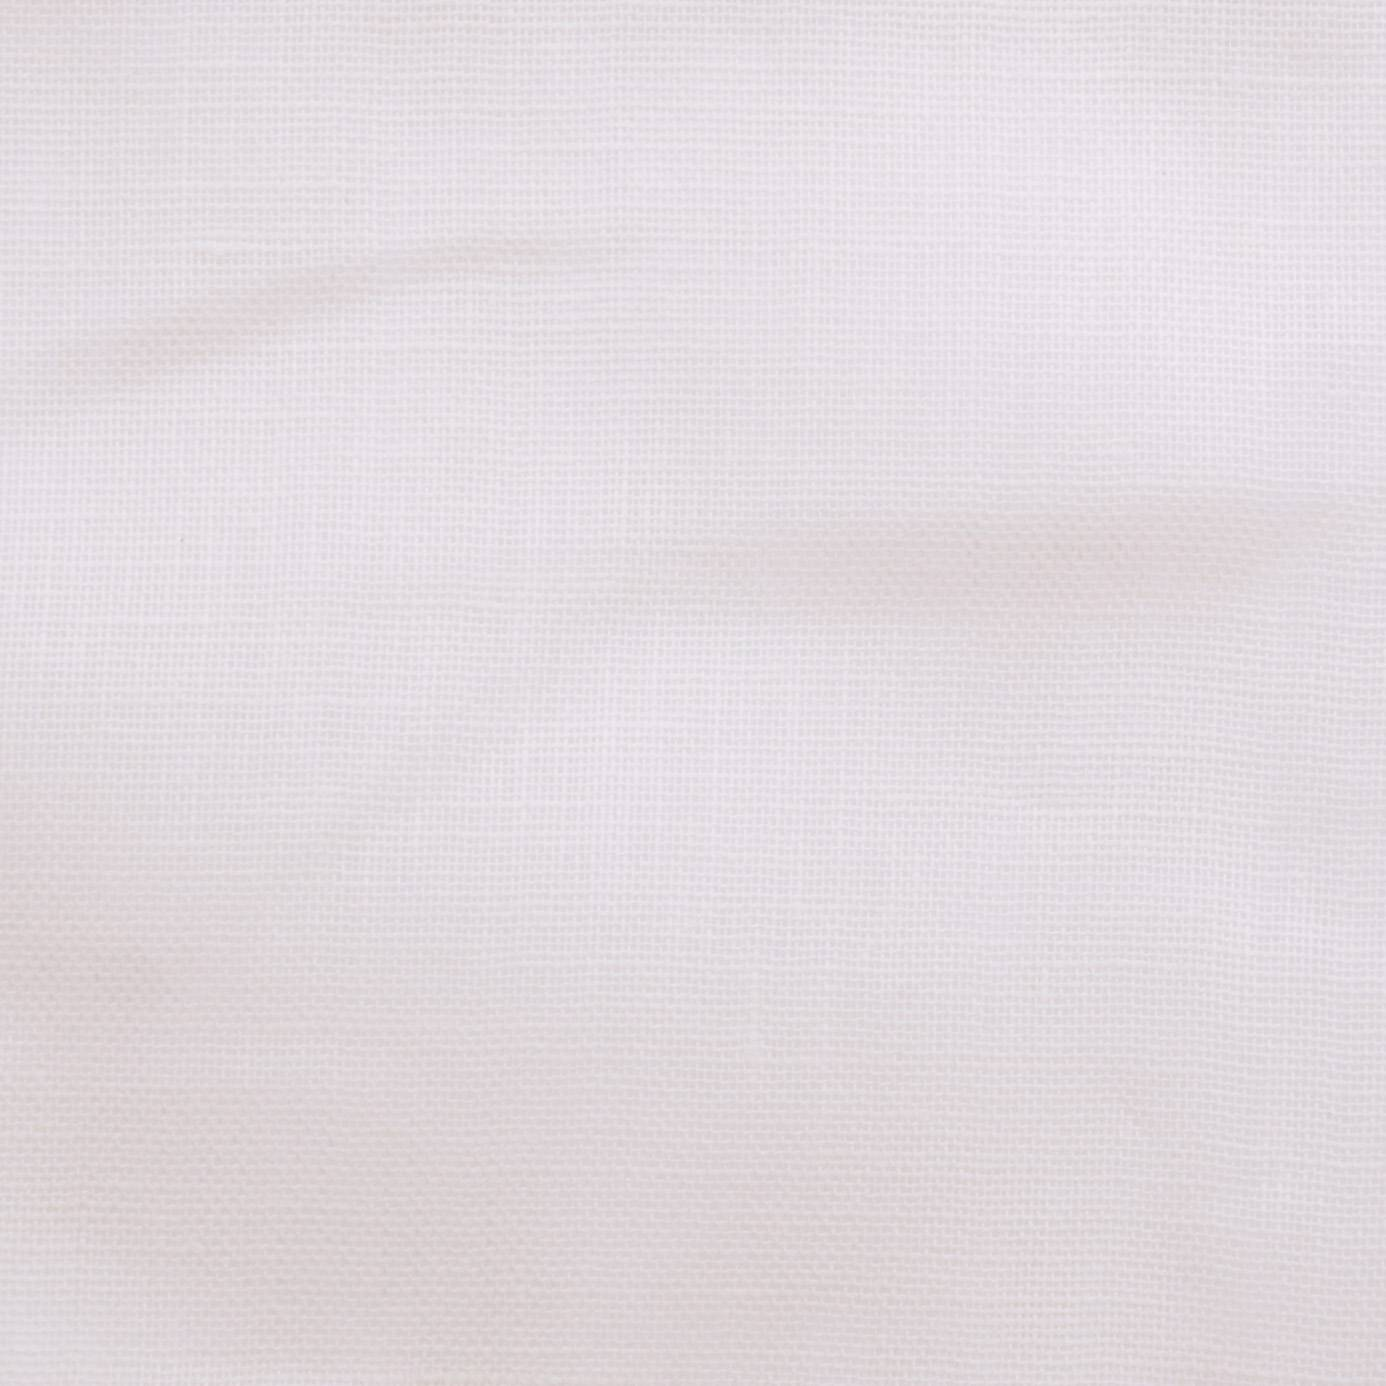 Lightweight Sheers Fabric Feather 243332 Sanderson Lightweight Sheers Fabric Collection